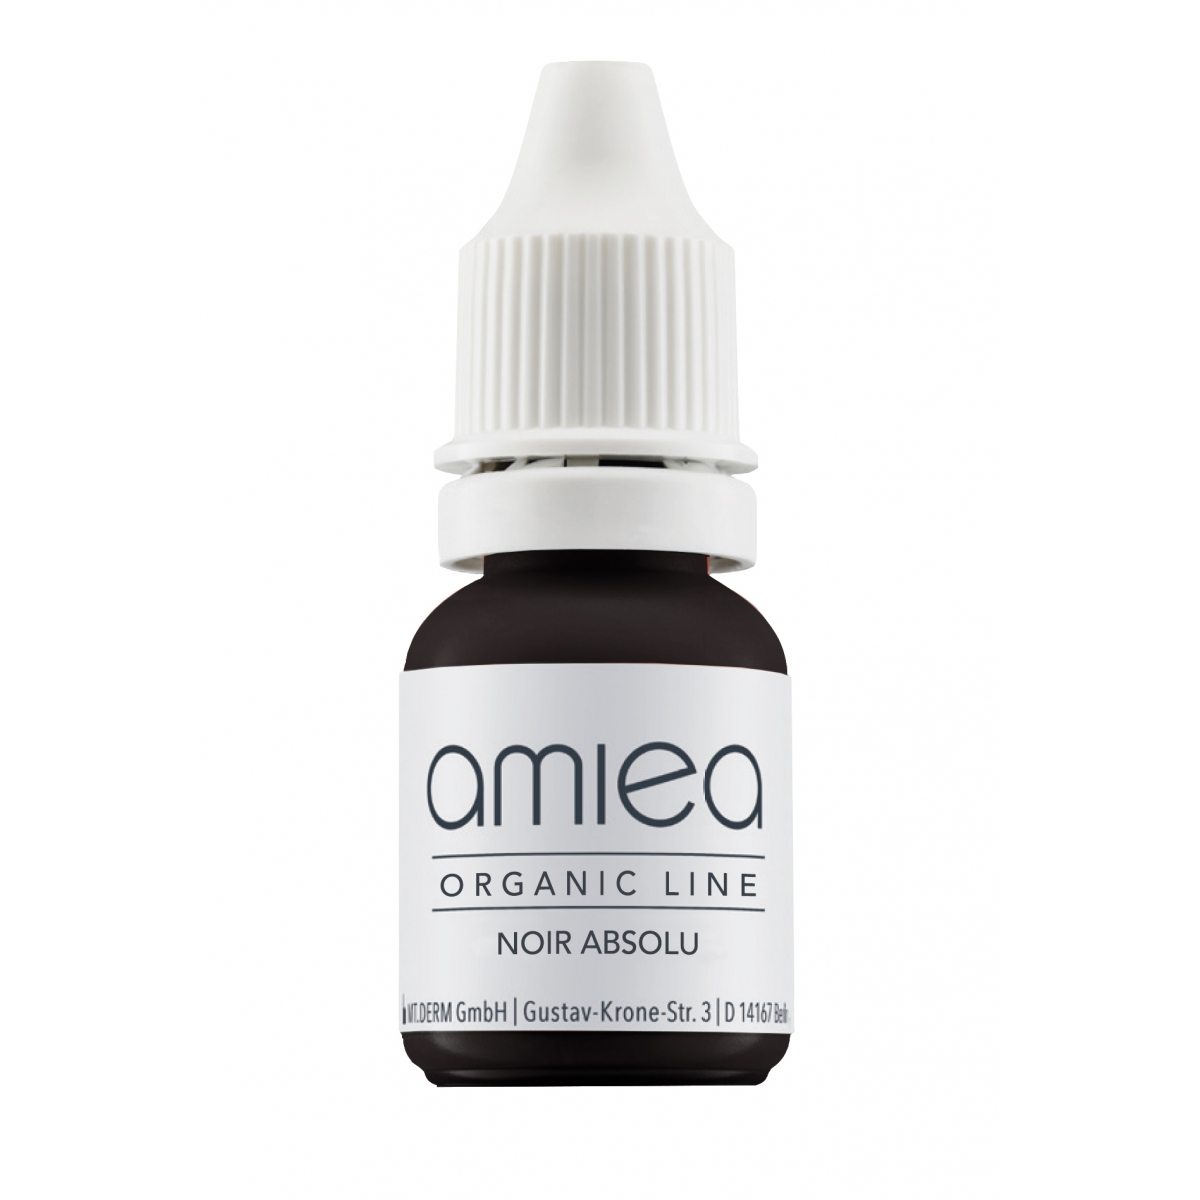 Organicline (5 ml)  - PIGMENTS AMIEA ORGANICLINE NOIR ABSOLU, Flacon 5 ml